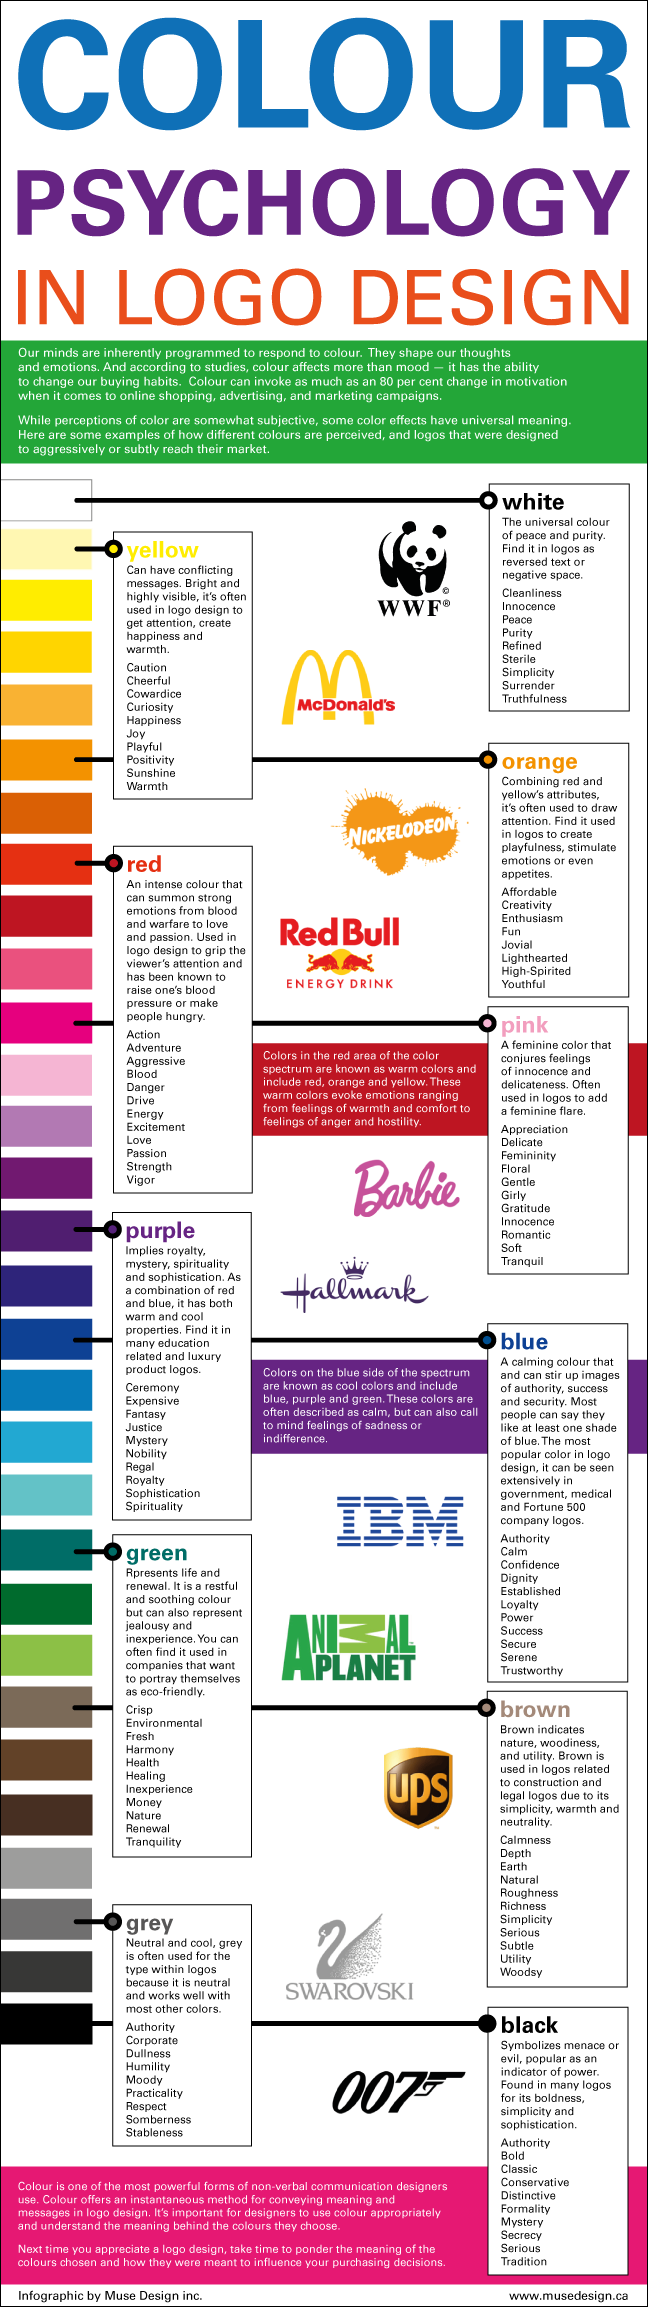 Colour-Psychology-Infographic-11